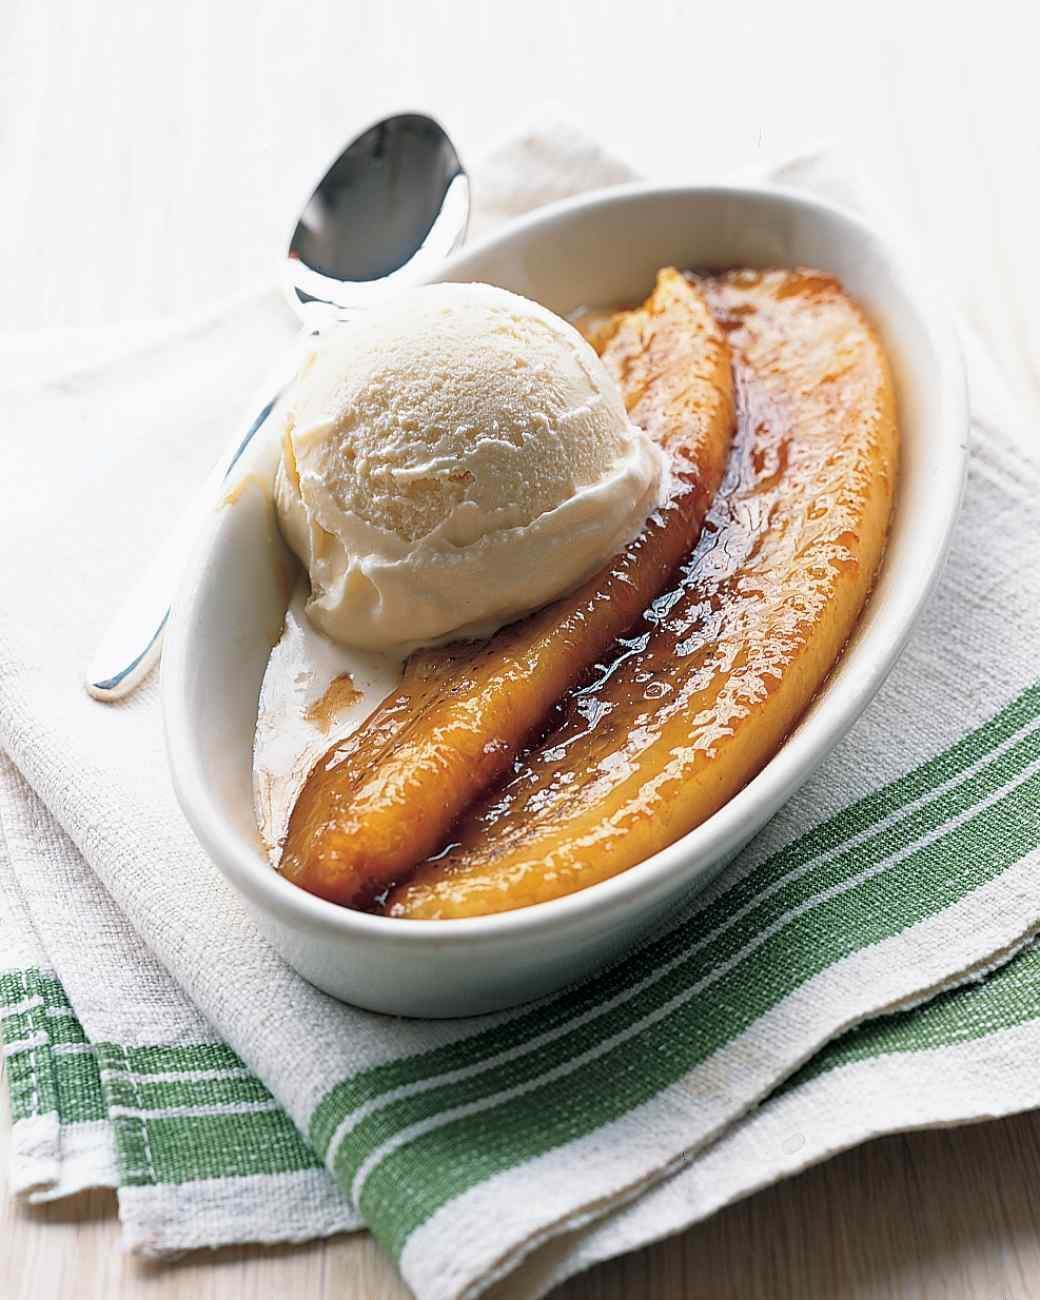 Breakfast + Dessert: Dreamy Bananas Foster French Toast